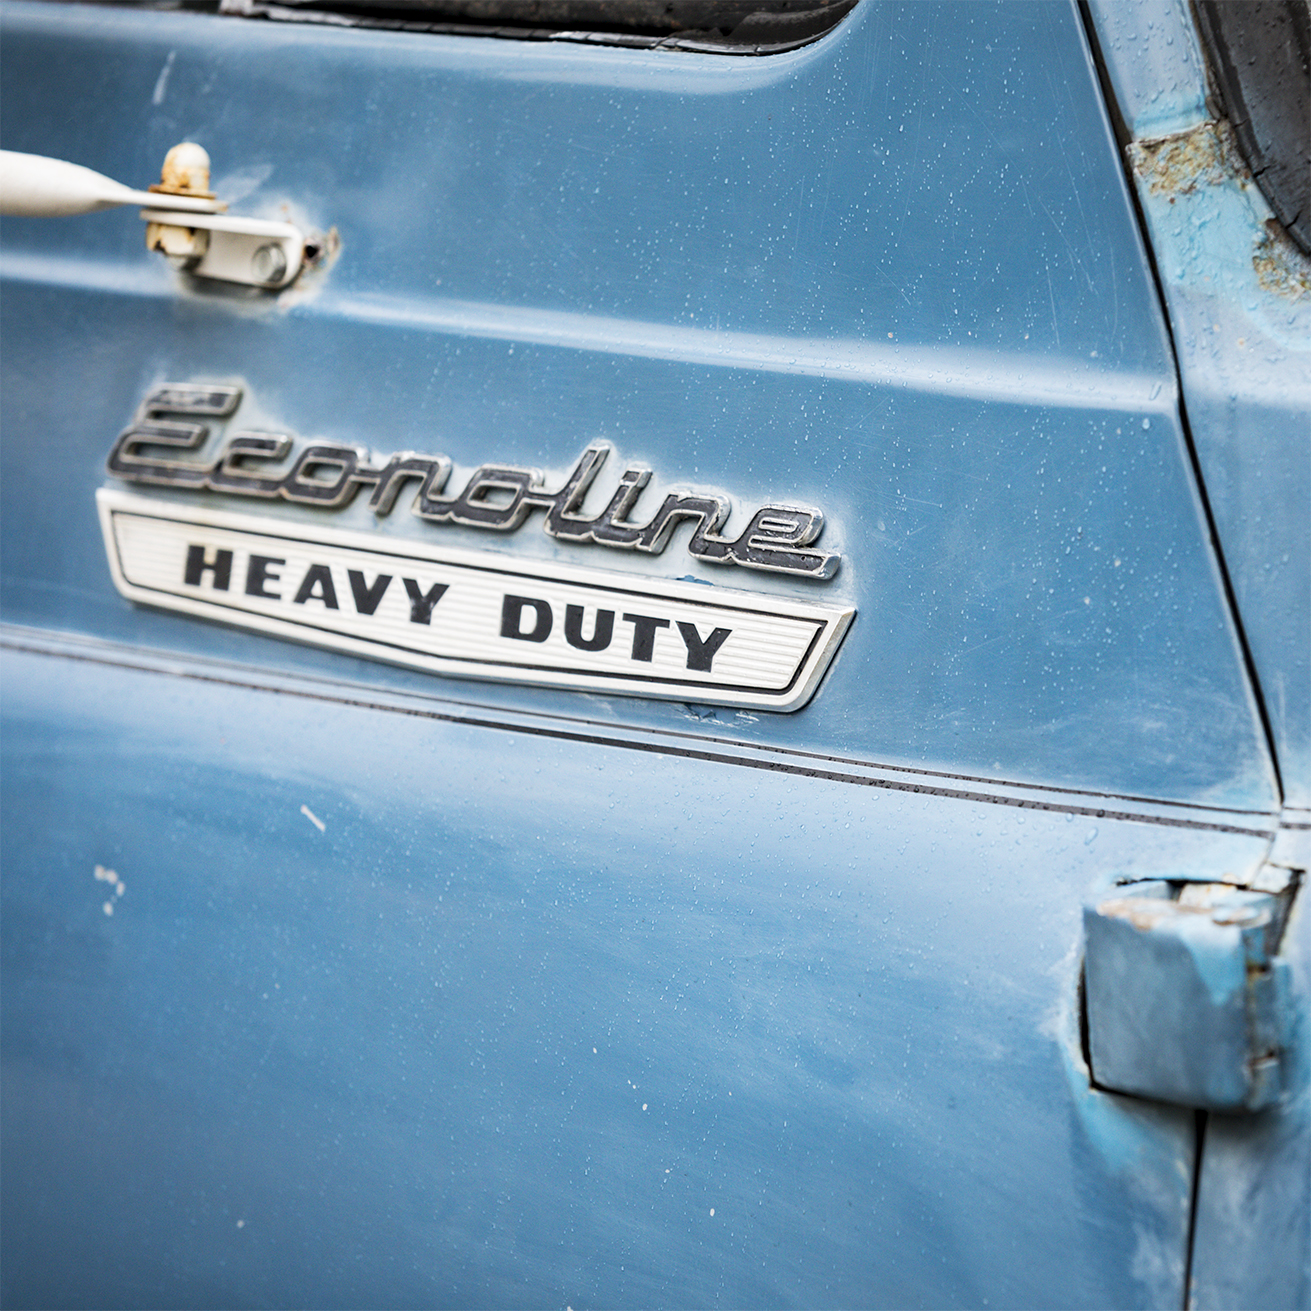 Ford Econoline Heavy Duty